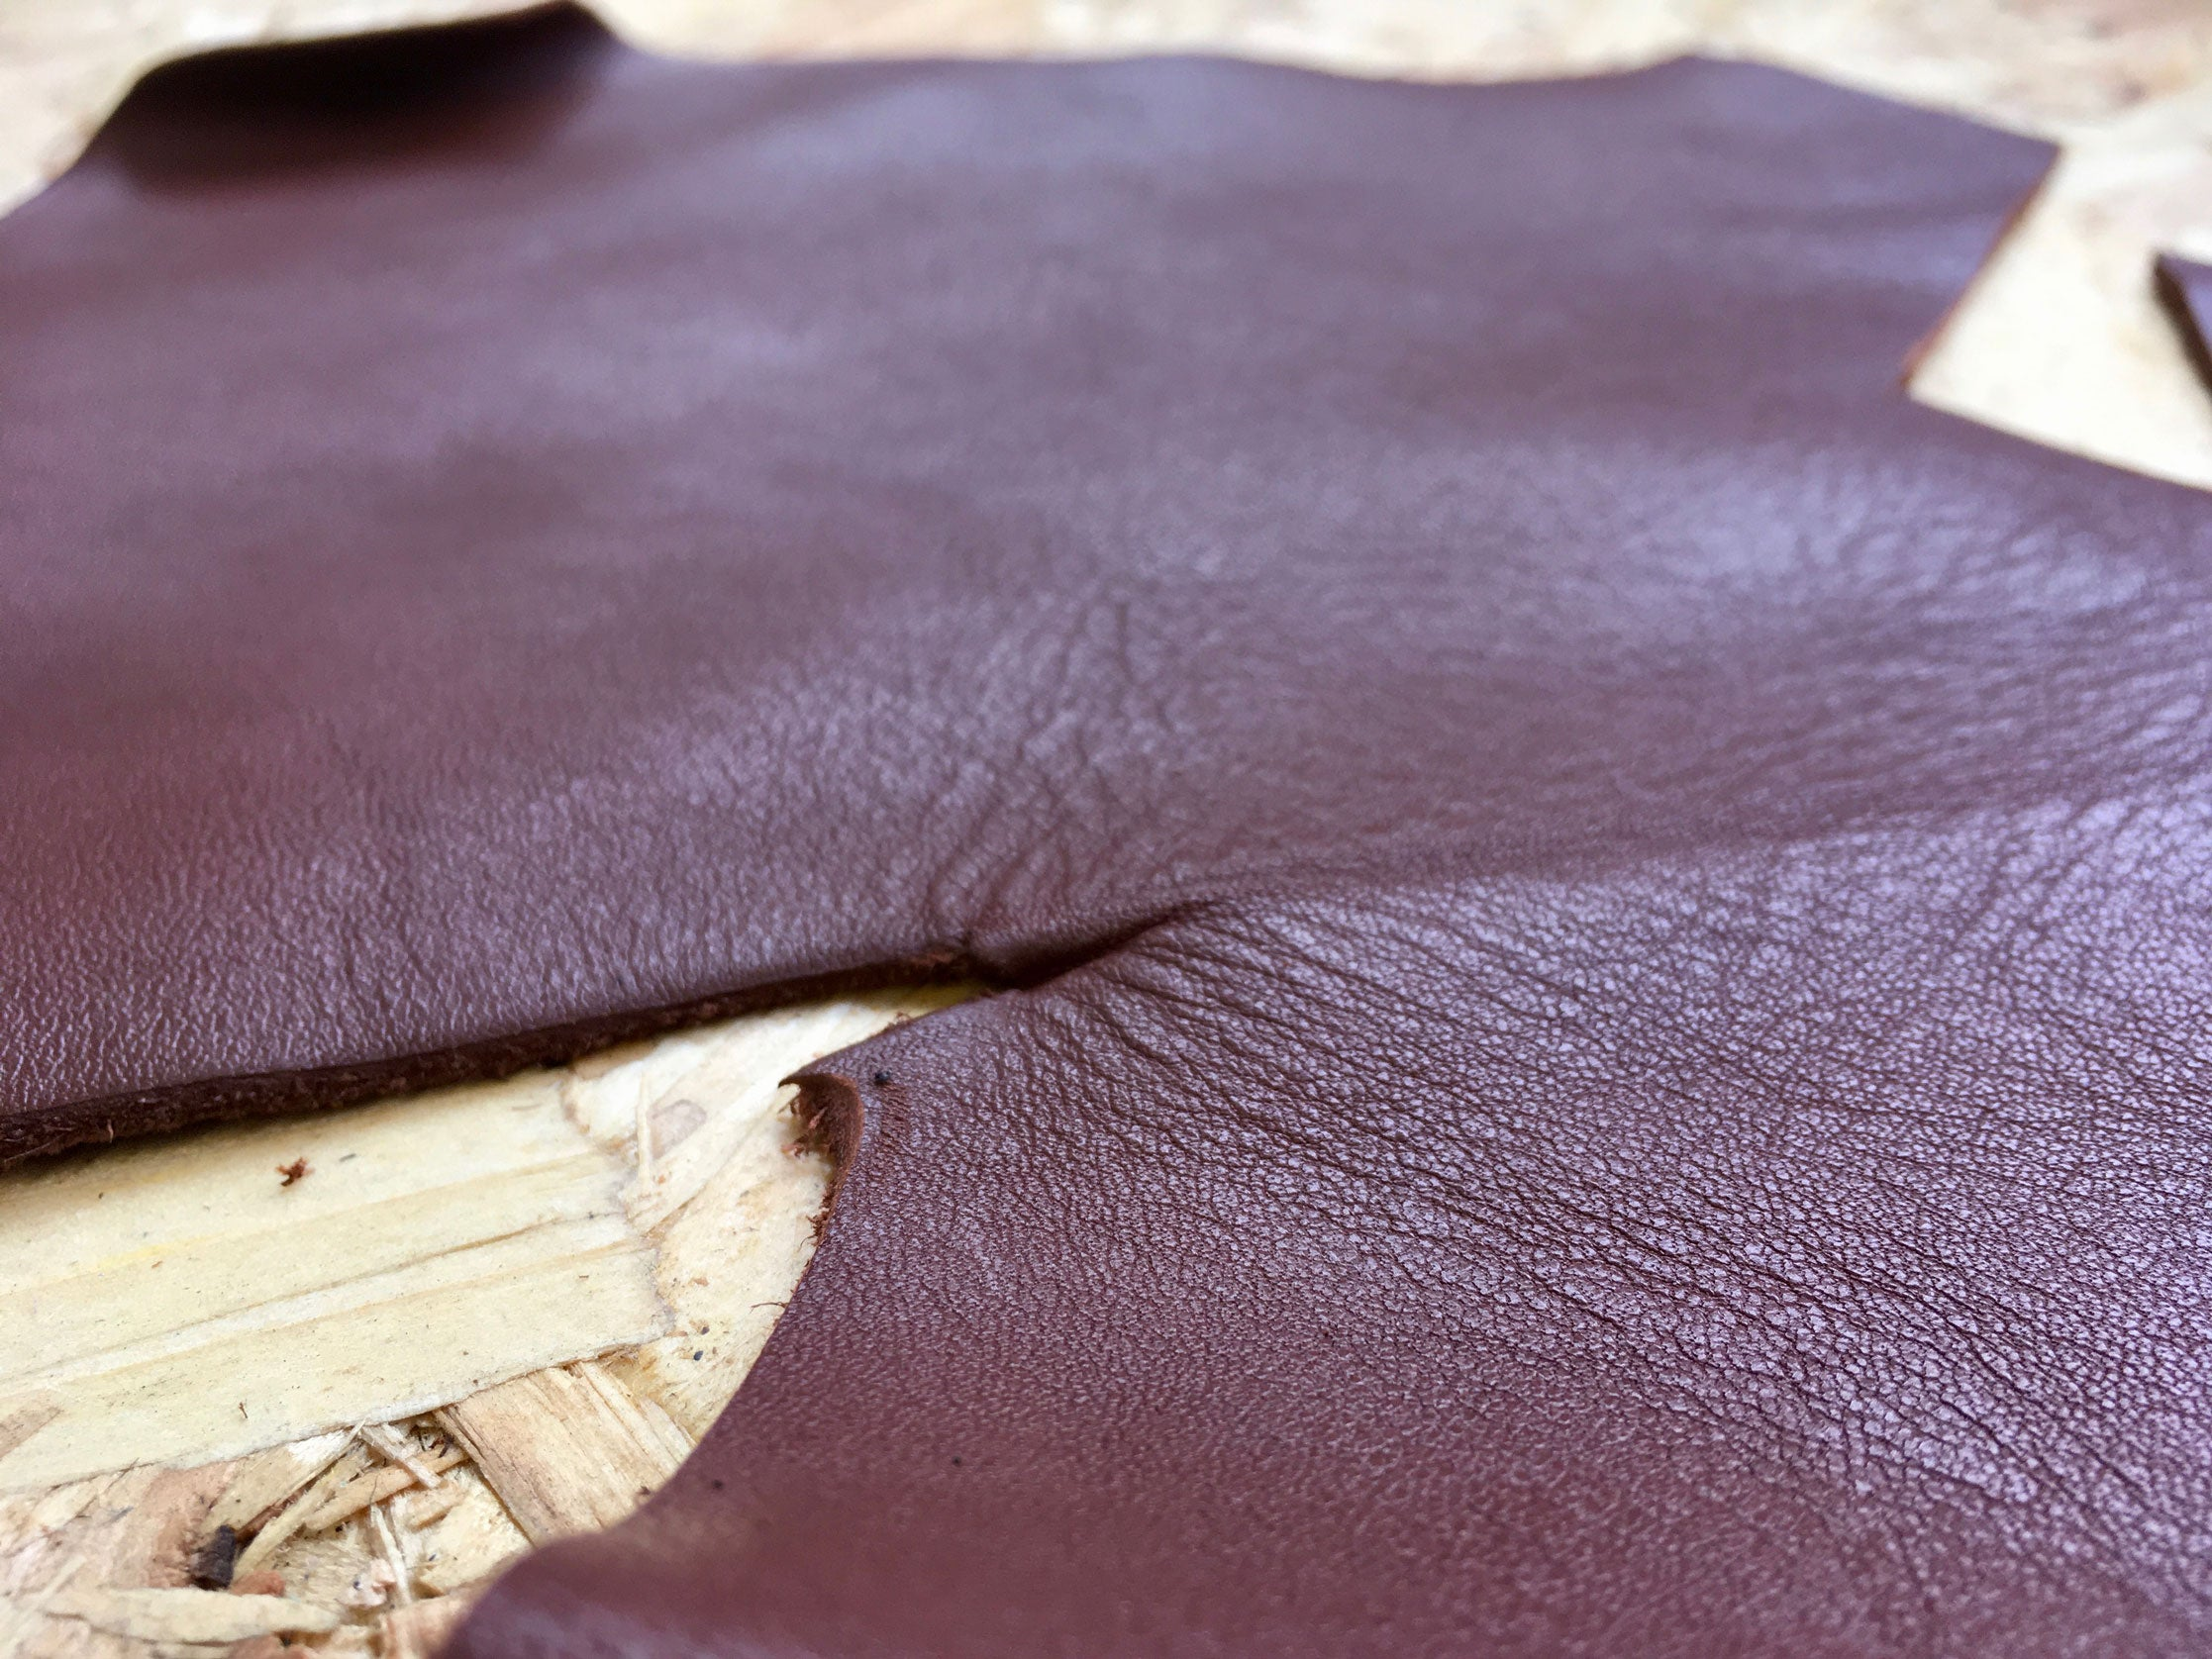 Close-up of texture of Scrap Leather Offcuts – Light Brown Cowhide Leather Pieces by Bookshell Bindery